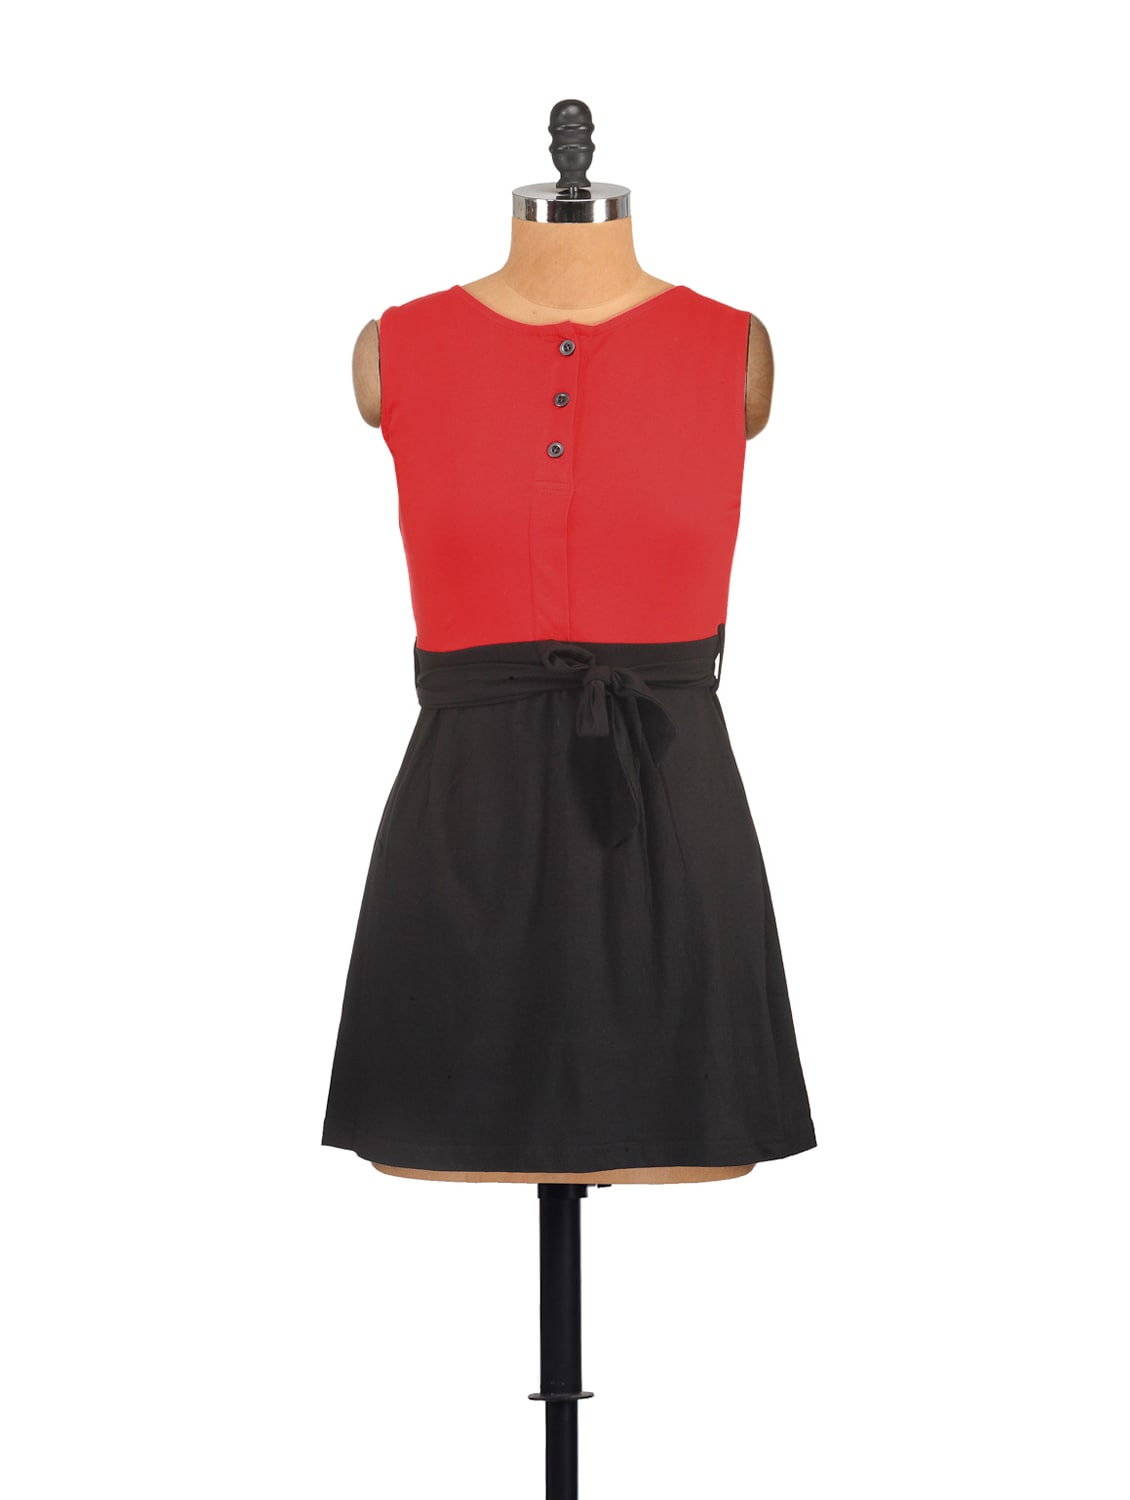 Red And Black Casual Dress With A Tie Up Belt - GRITSTONES